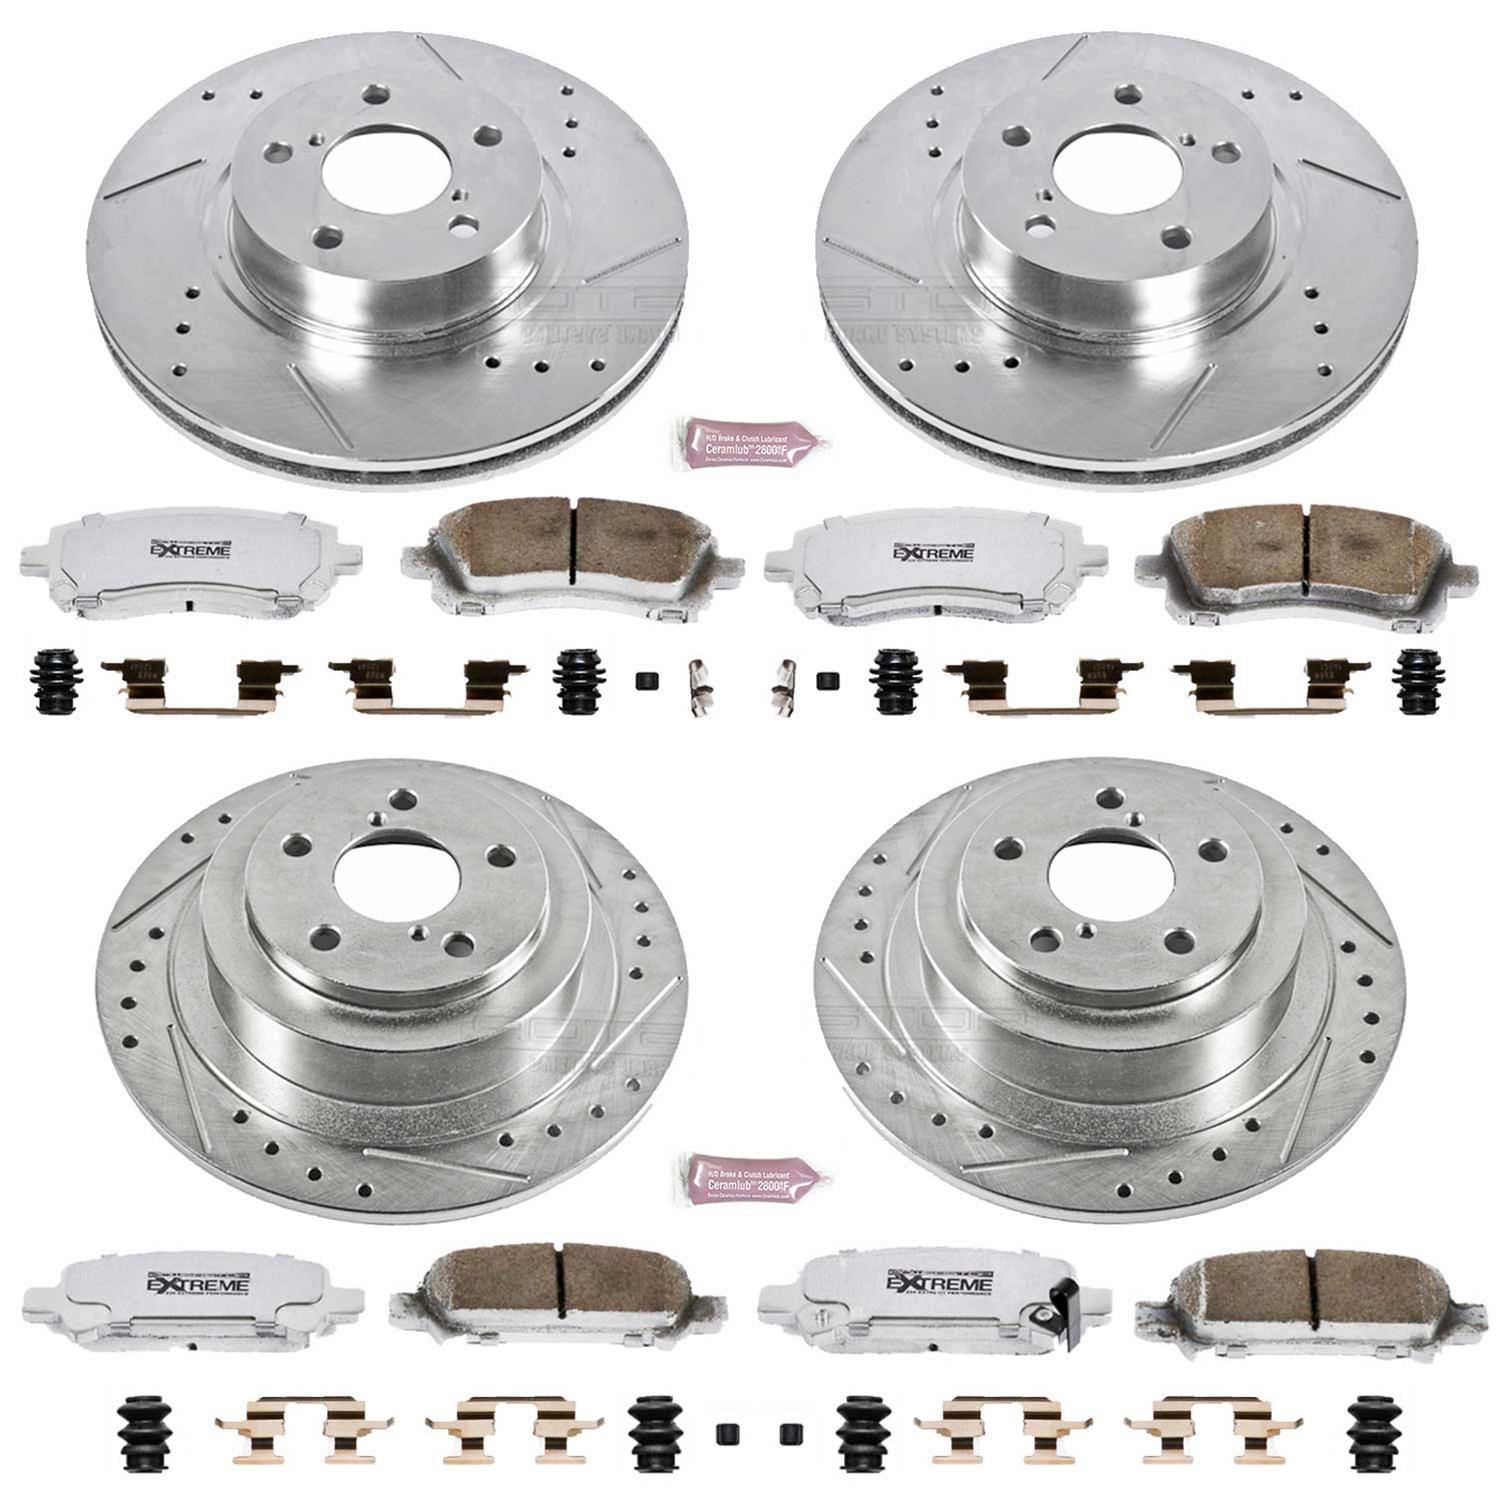 Power Stop K1120-26 Front Z26 Street Warrior Brake Kit Subaru